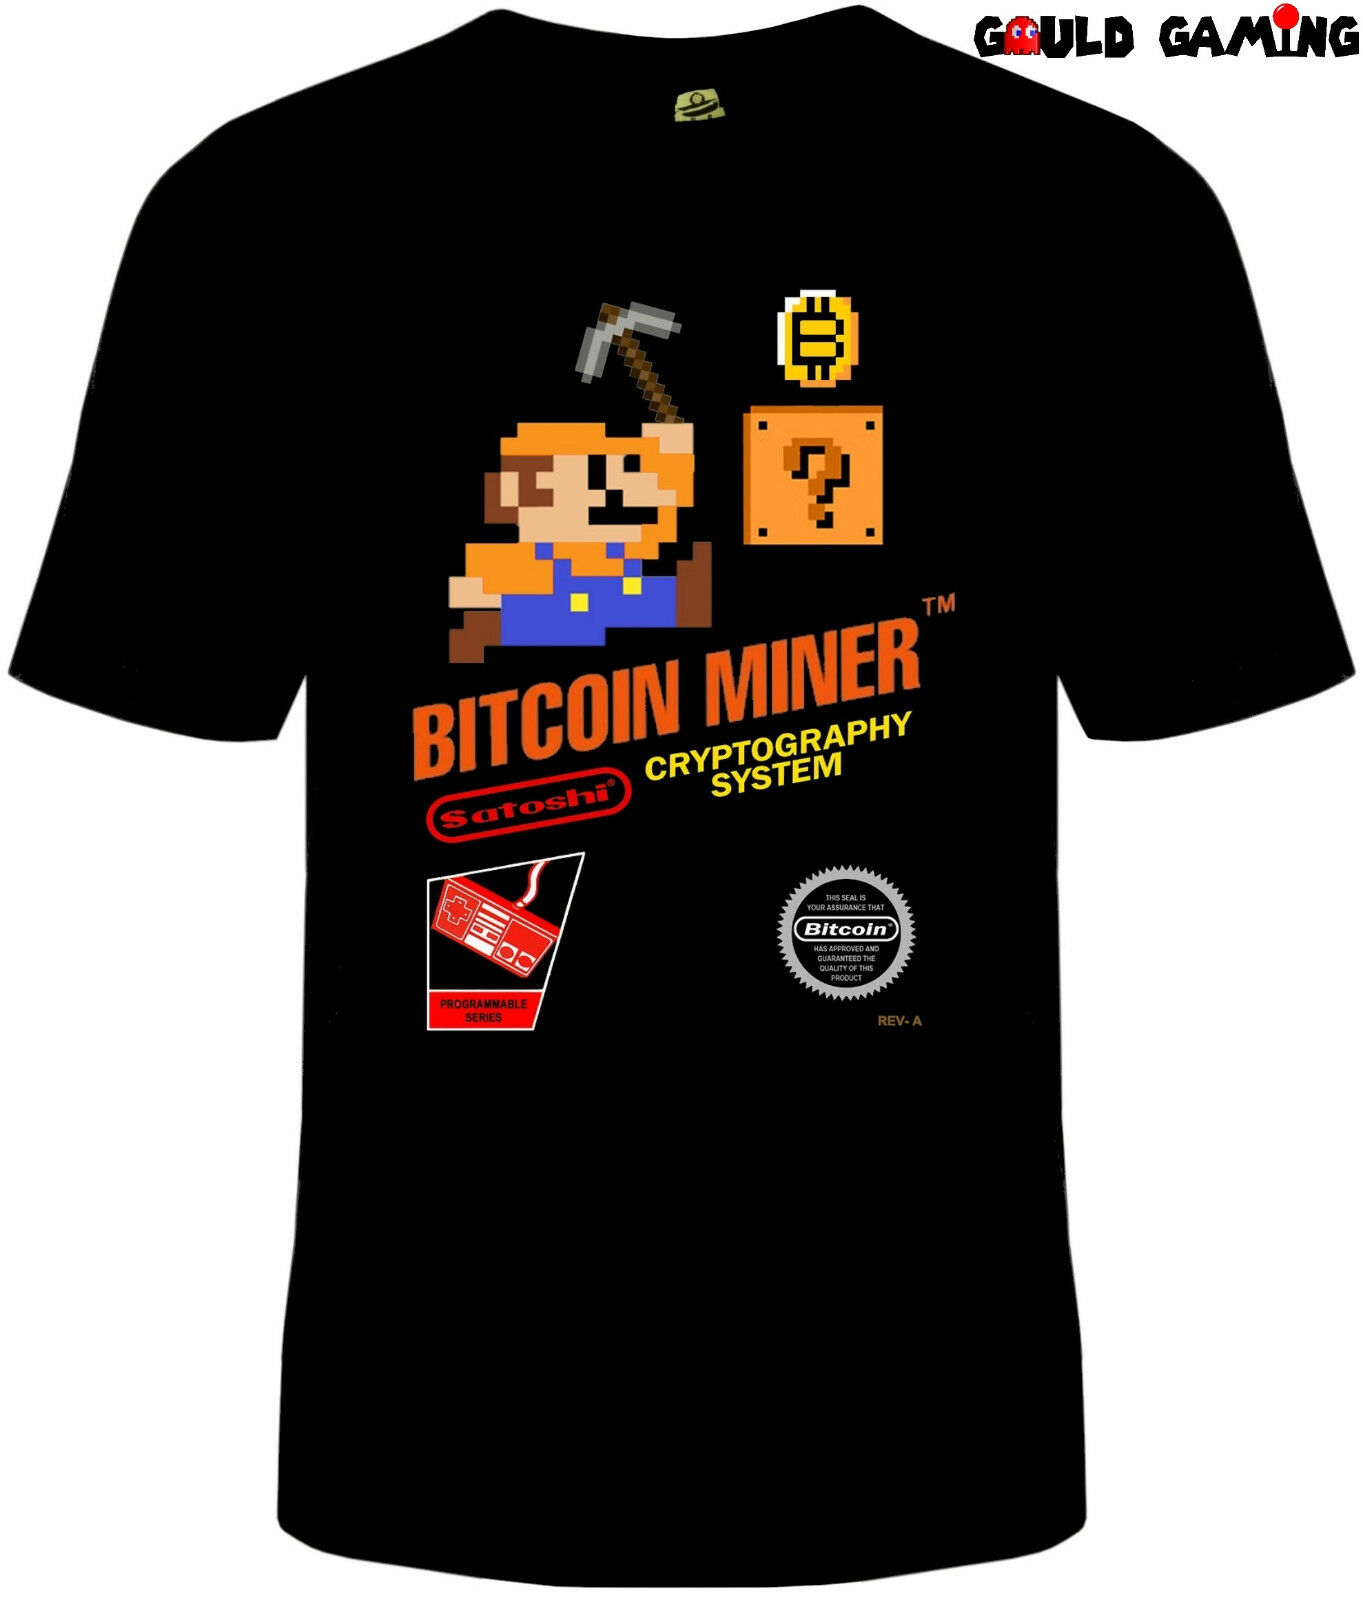 Bitcoin Miner Super Mario Crypto T Shirt Unisex Cotton Adult Sizes Nintendo New